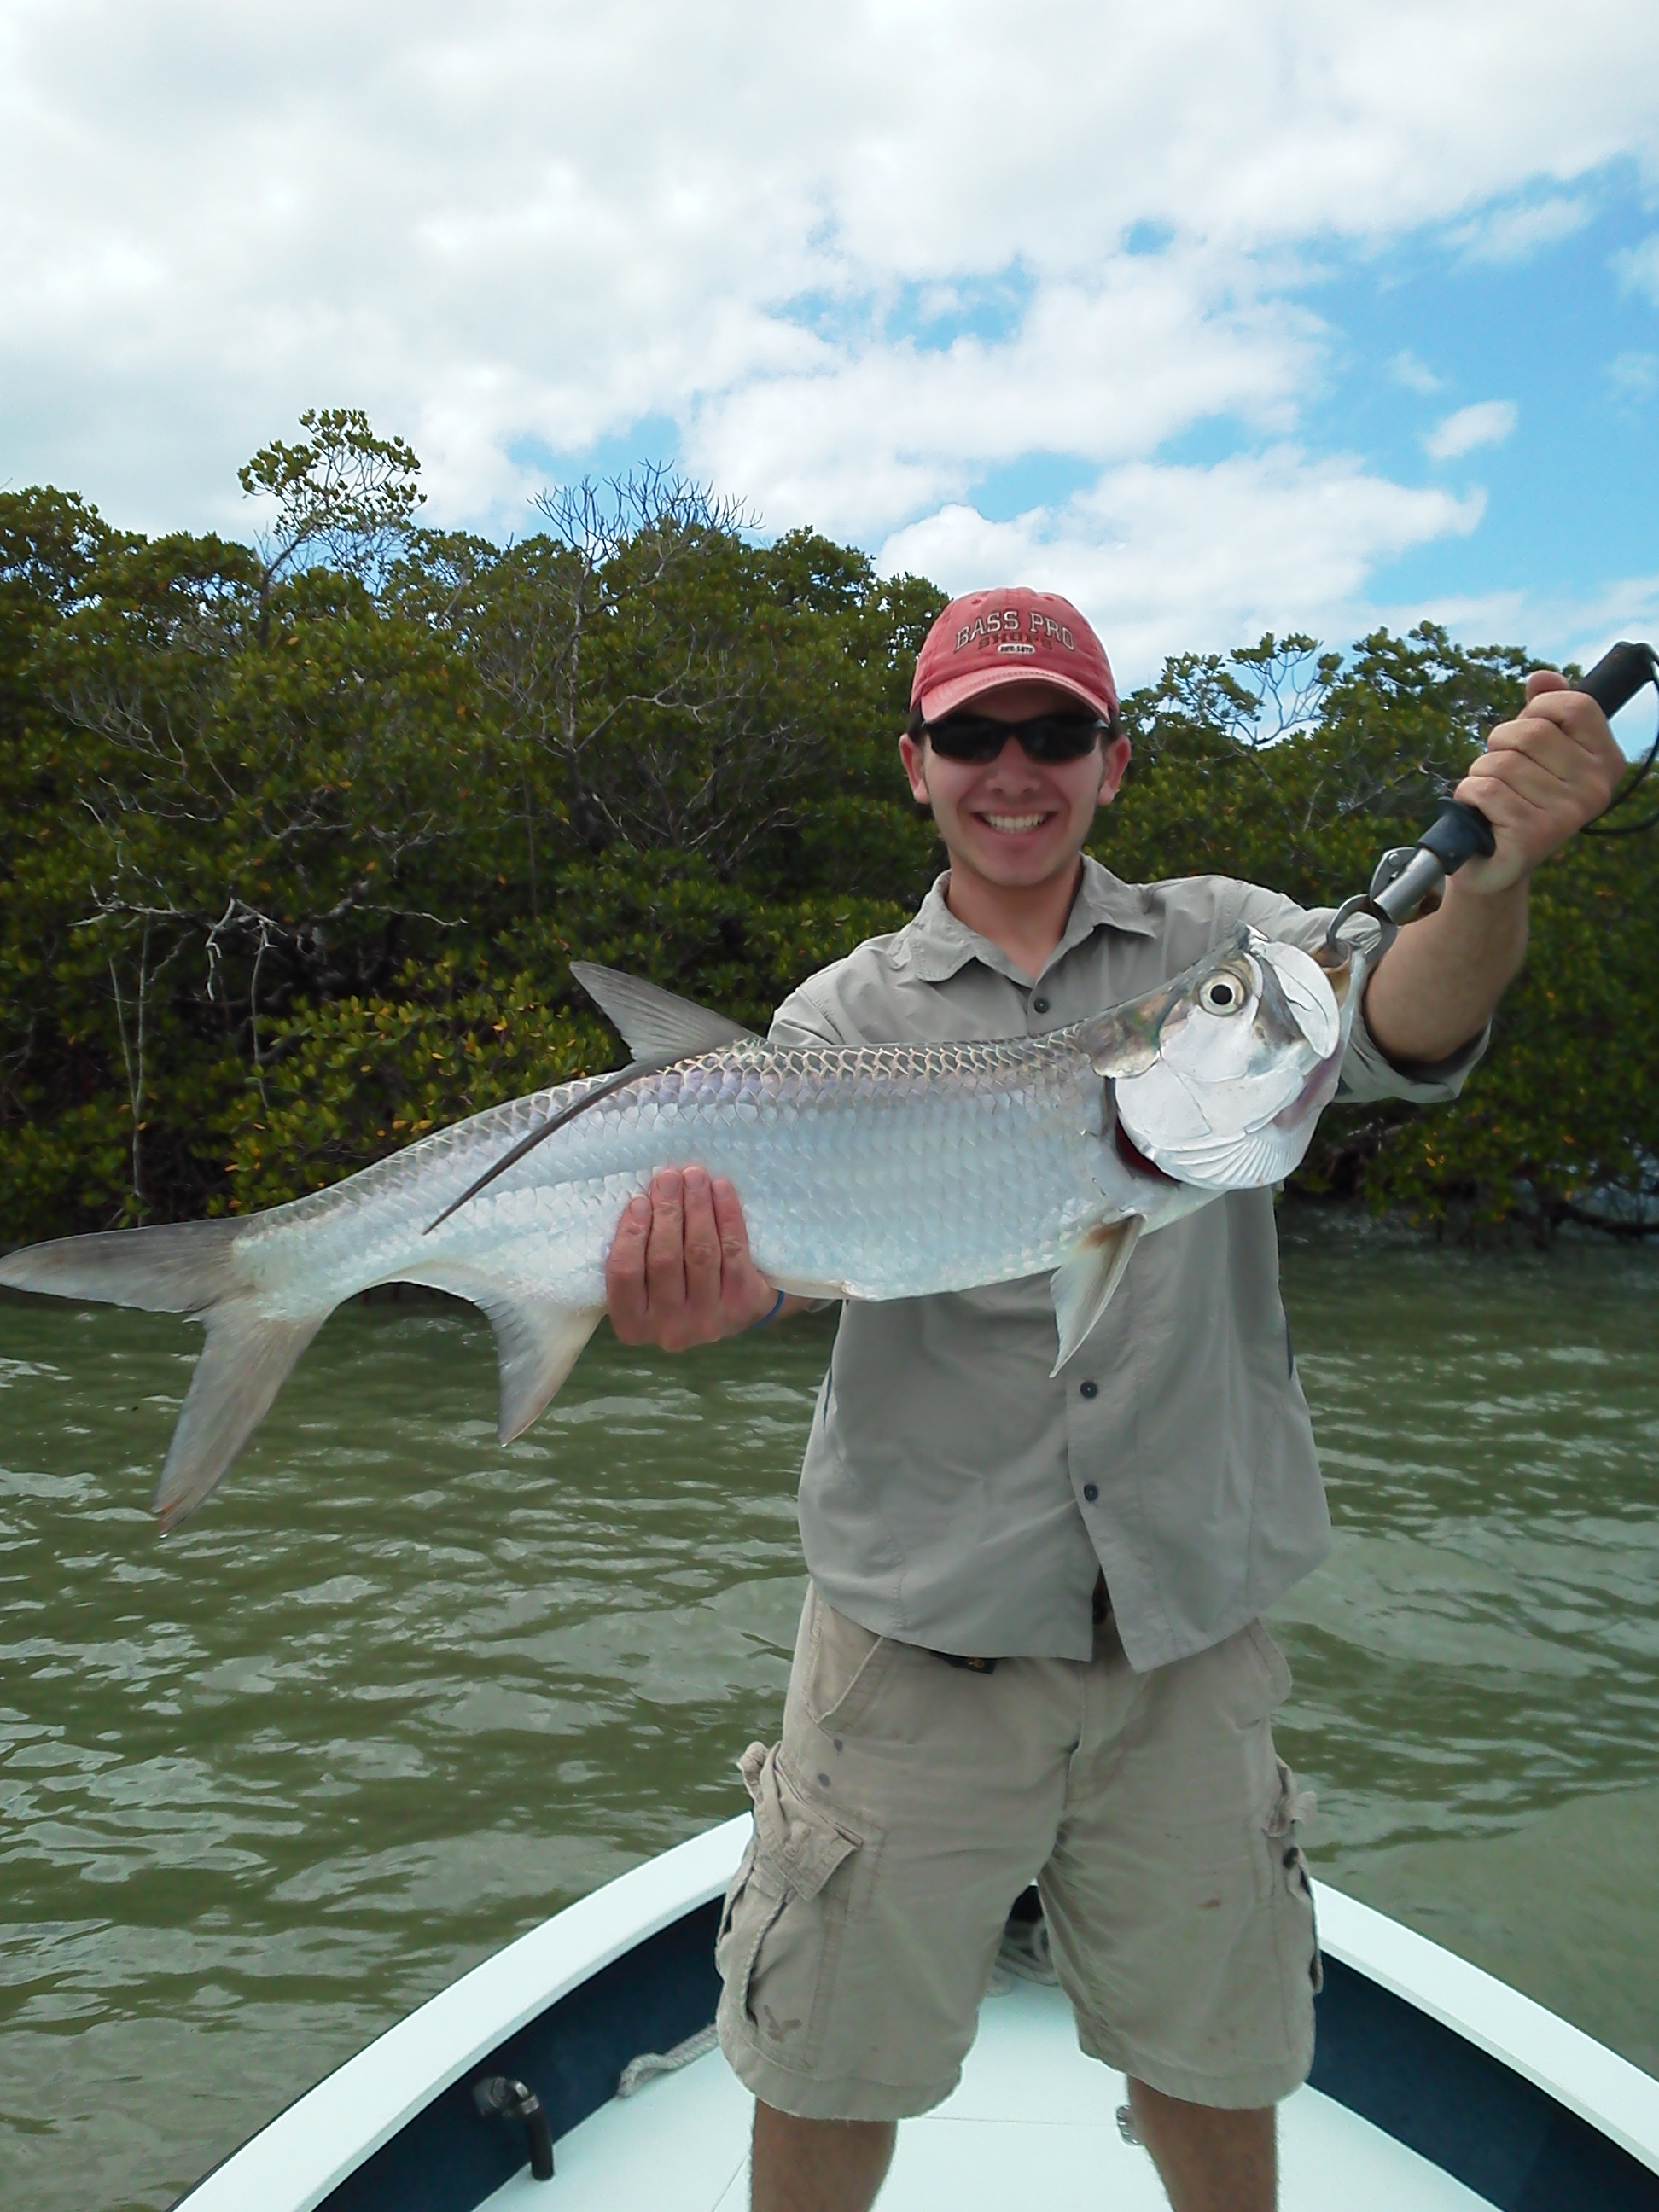 3 12 2012 tarpon fishing charters and boat tours in for Fishing charters naples fl